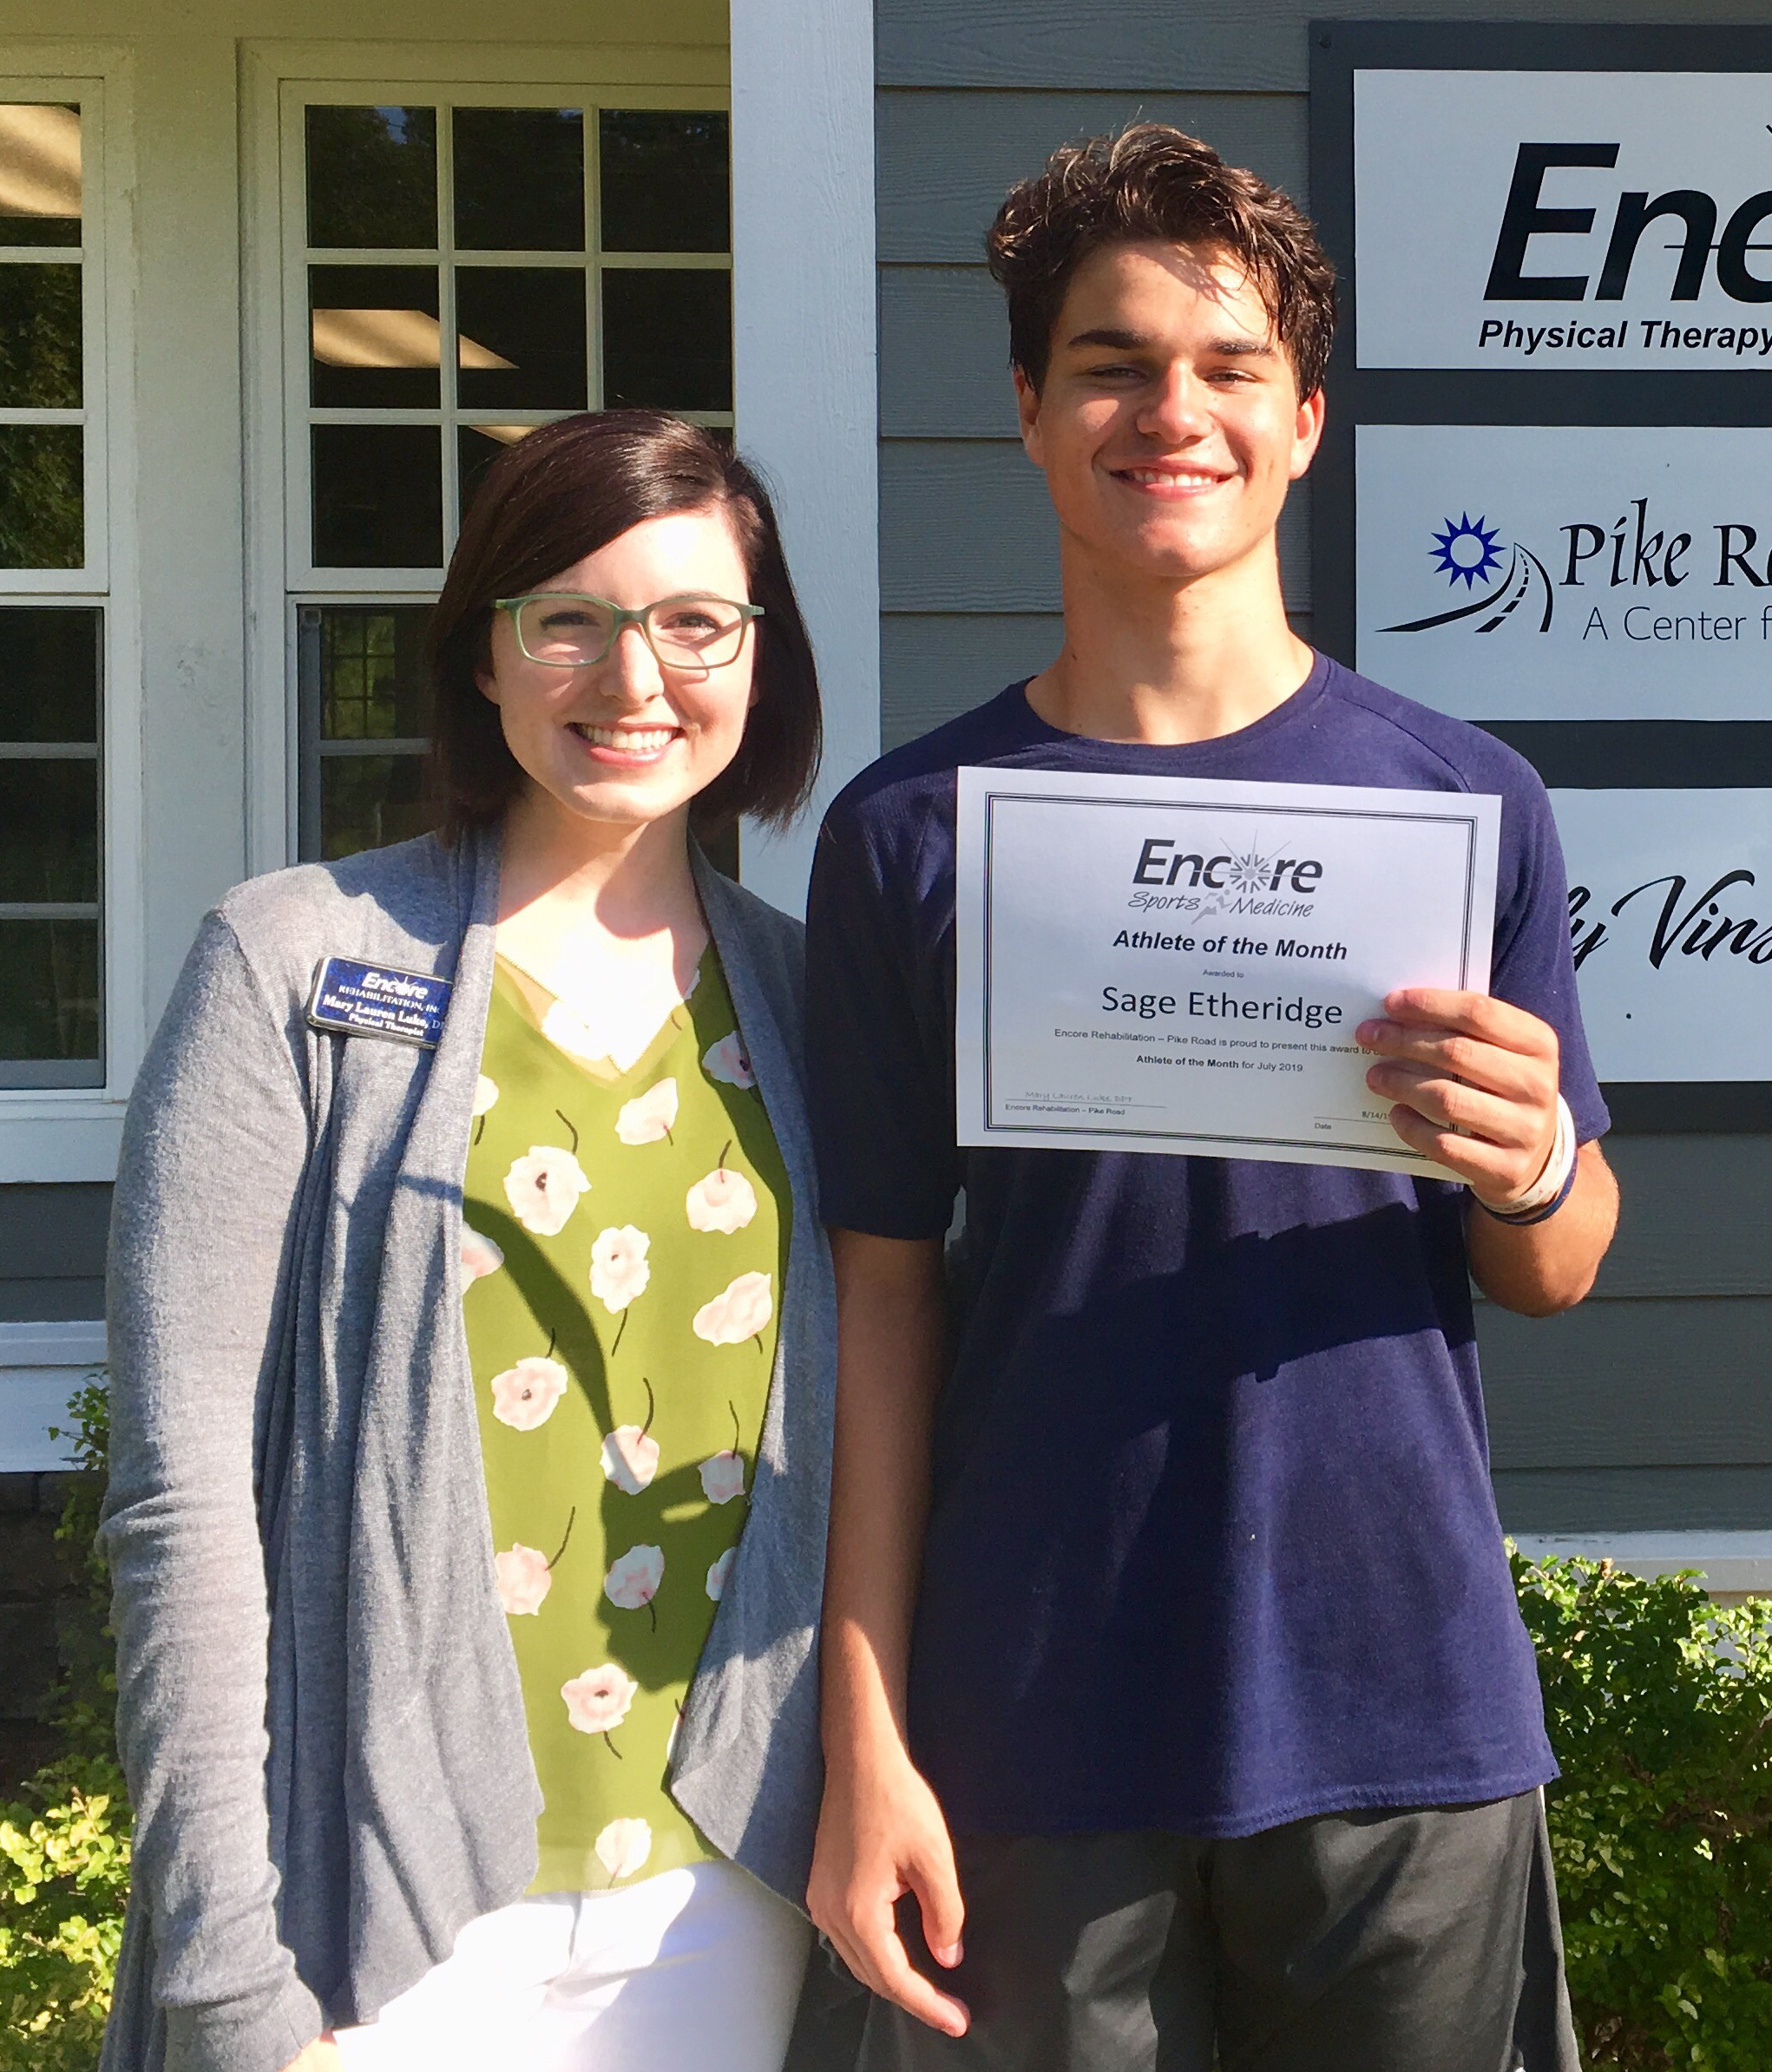 Sage Etheridge is Athlete of the Month for Encore Rehabilitation-Pike Road